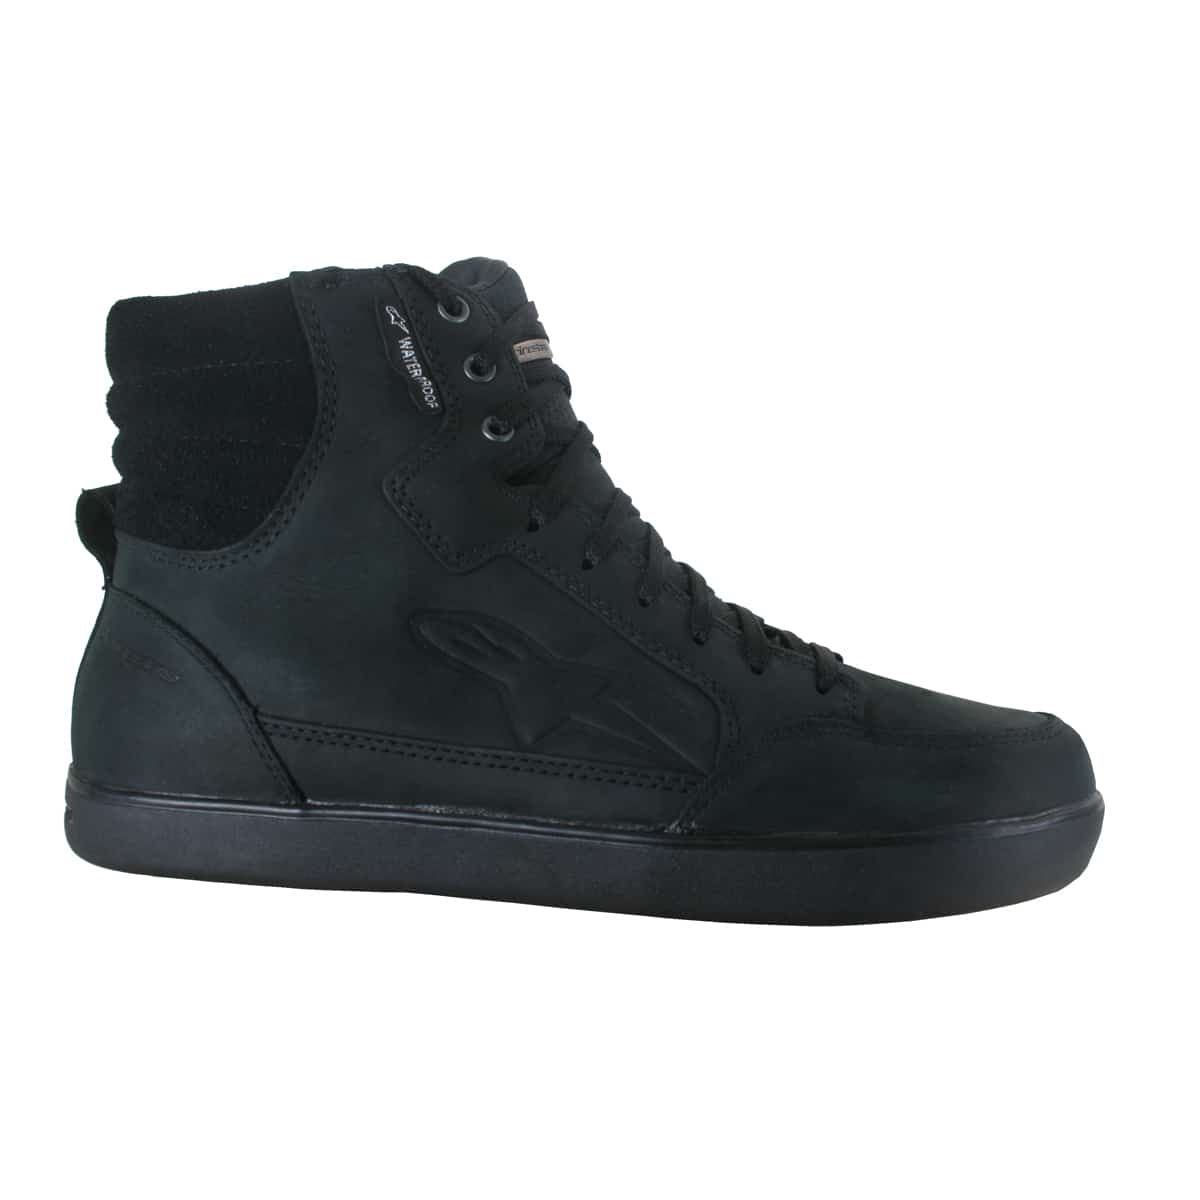 764c417a6 Casual Motorcycle Boots: The top 10 styles this season - Inspire at ...